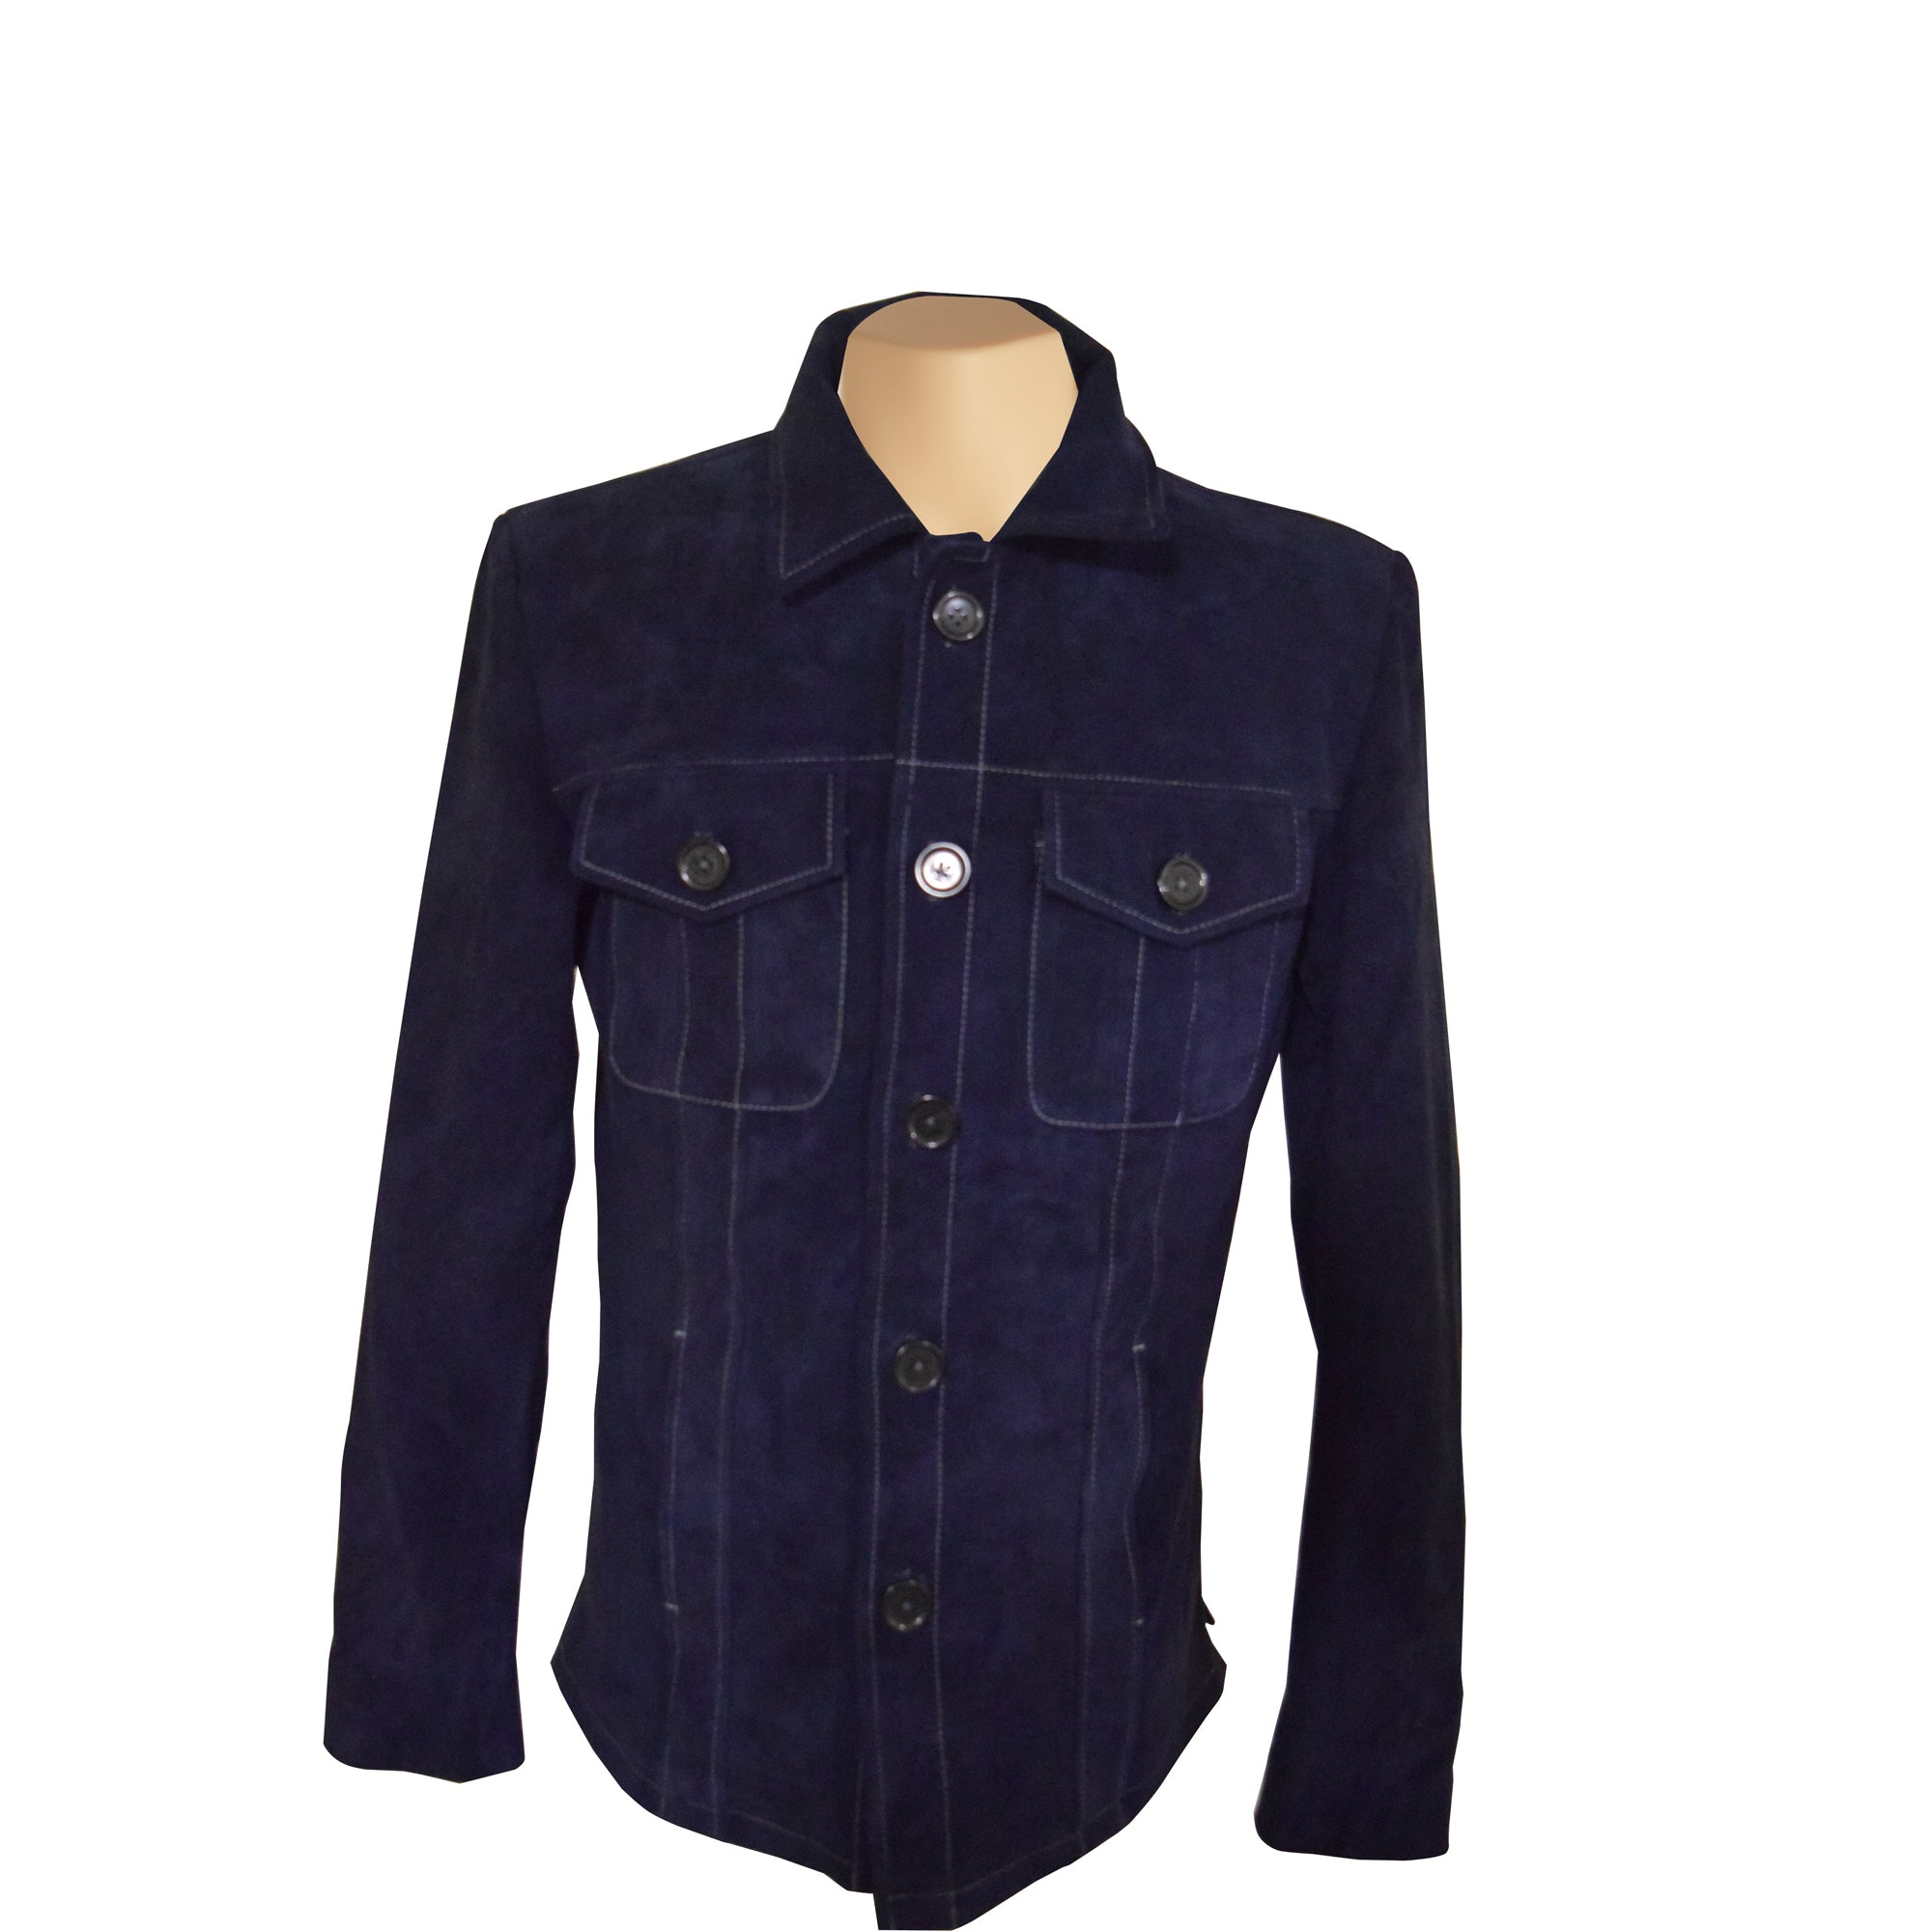 Neive's blue suede shirt